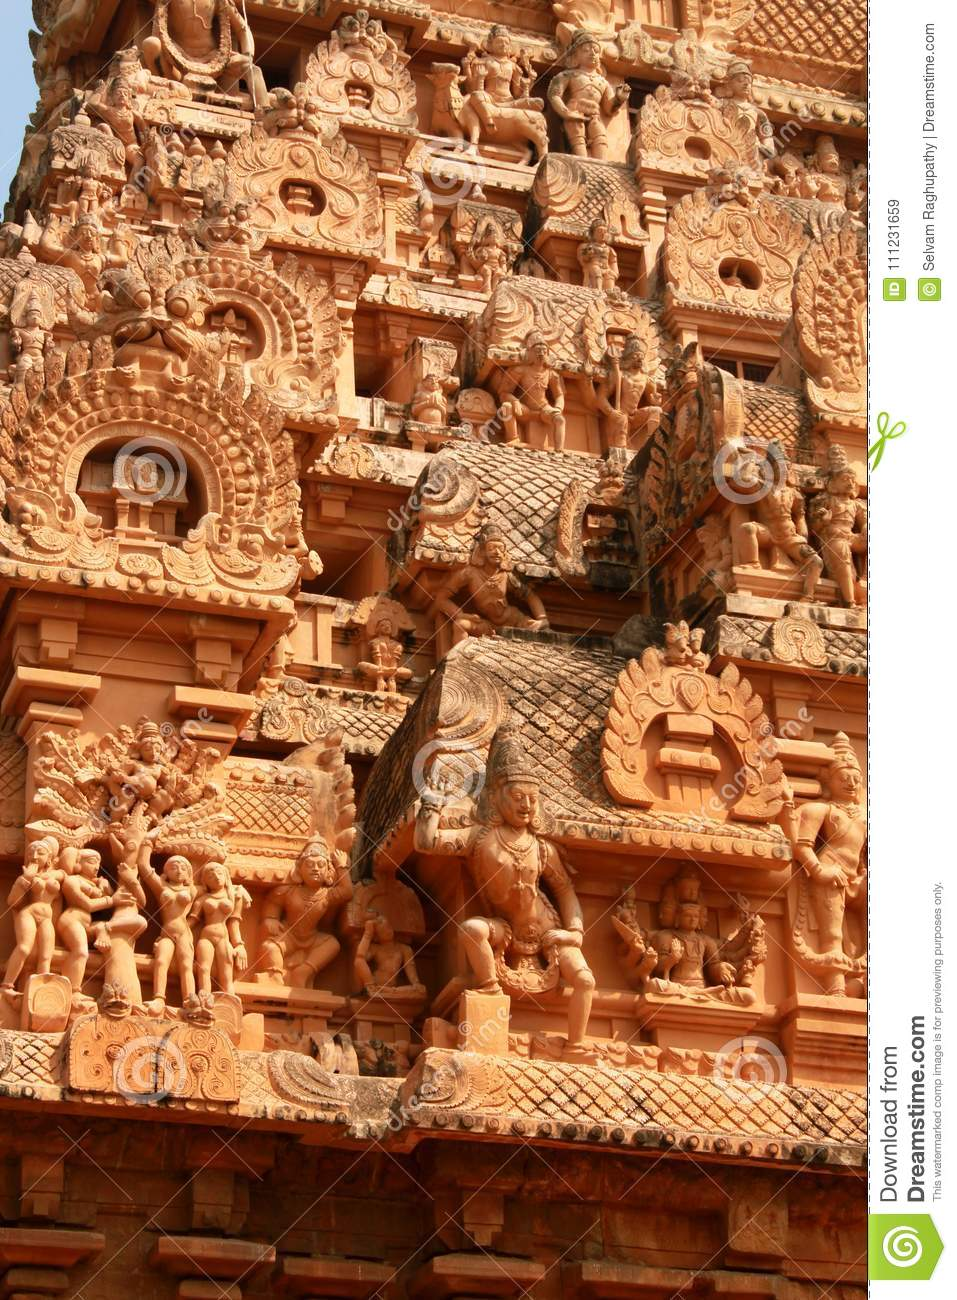 Beautiful Sculptures On The Ornamental Tower In The Ancient Brihadisvara  Temple In Thanjavur, India. Stock Image - Image of gopura, architecture:  111231659